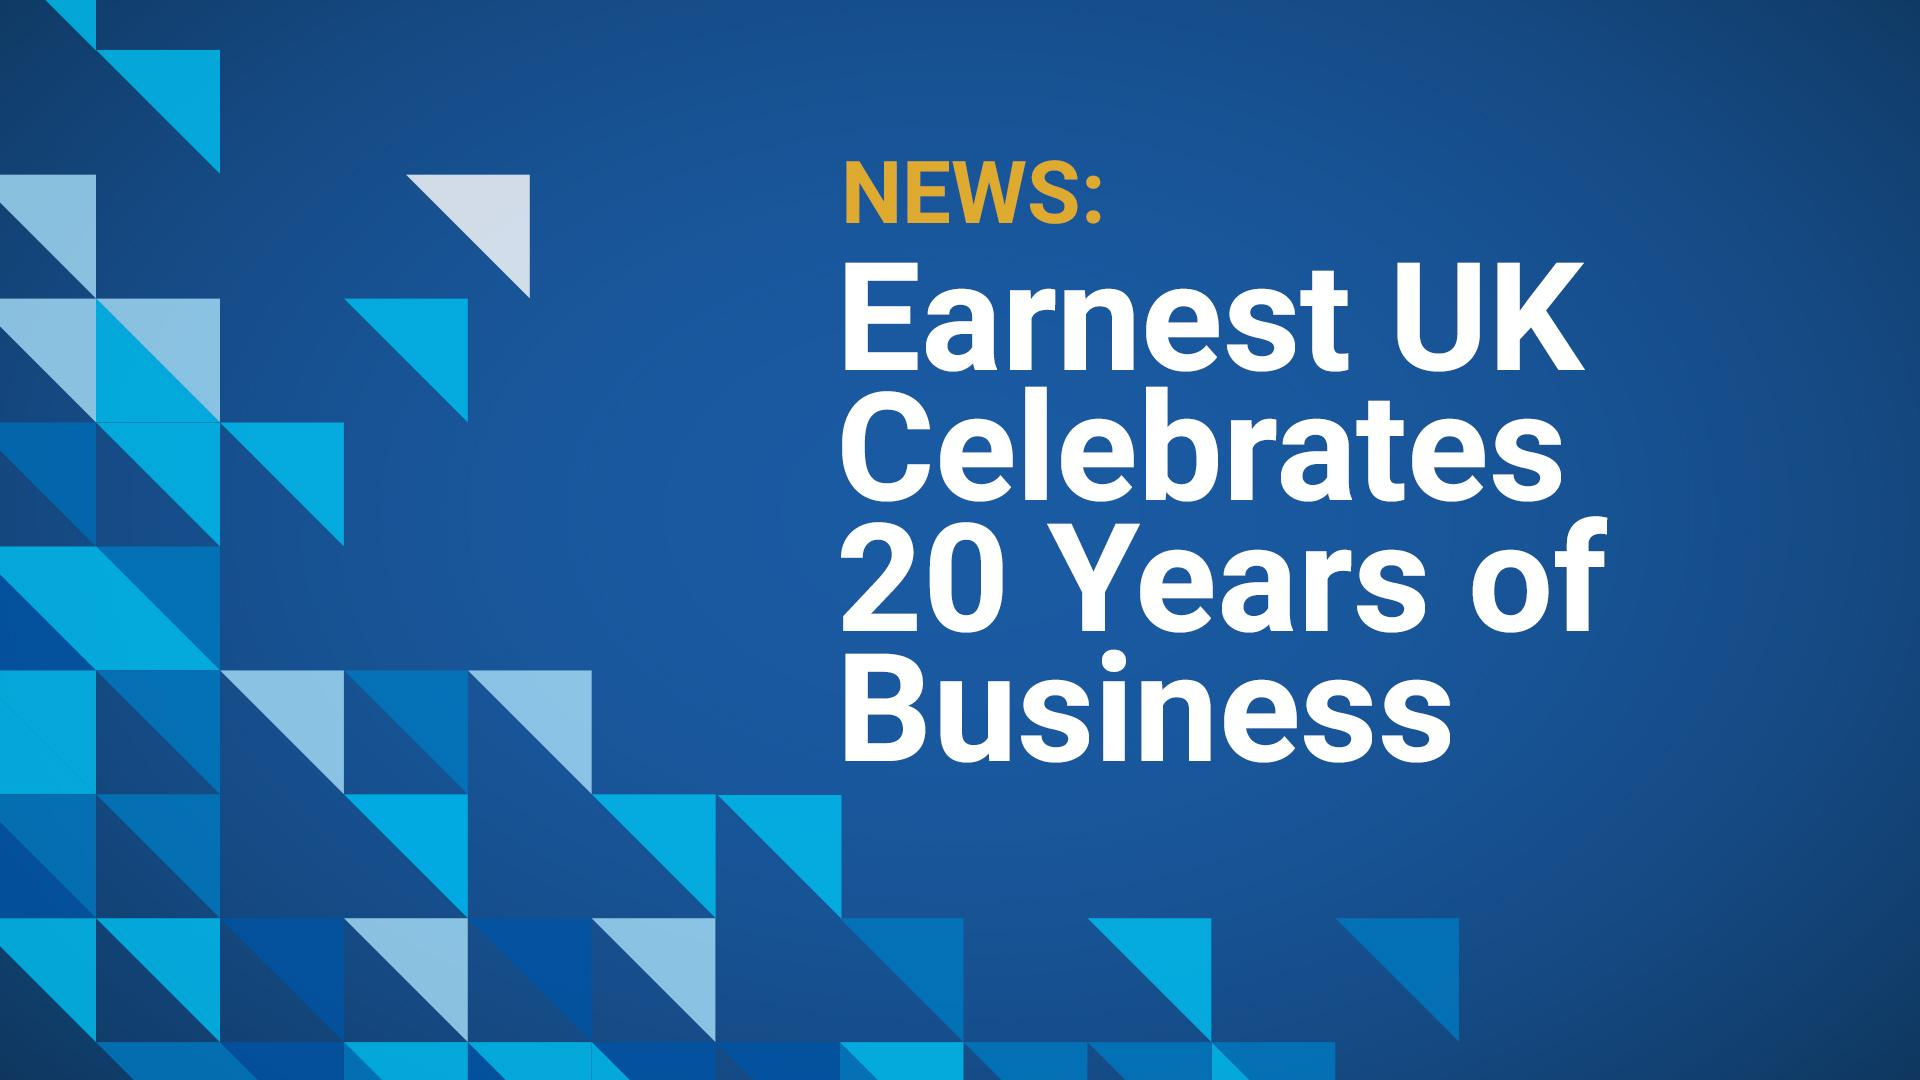 Earnest UK Celebrates 20 Years of Business